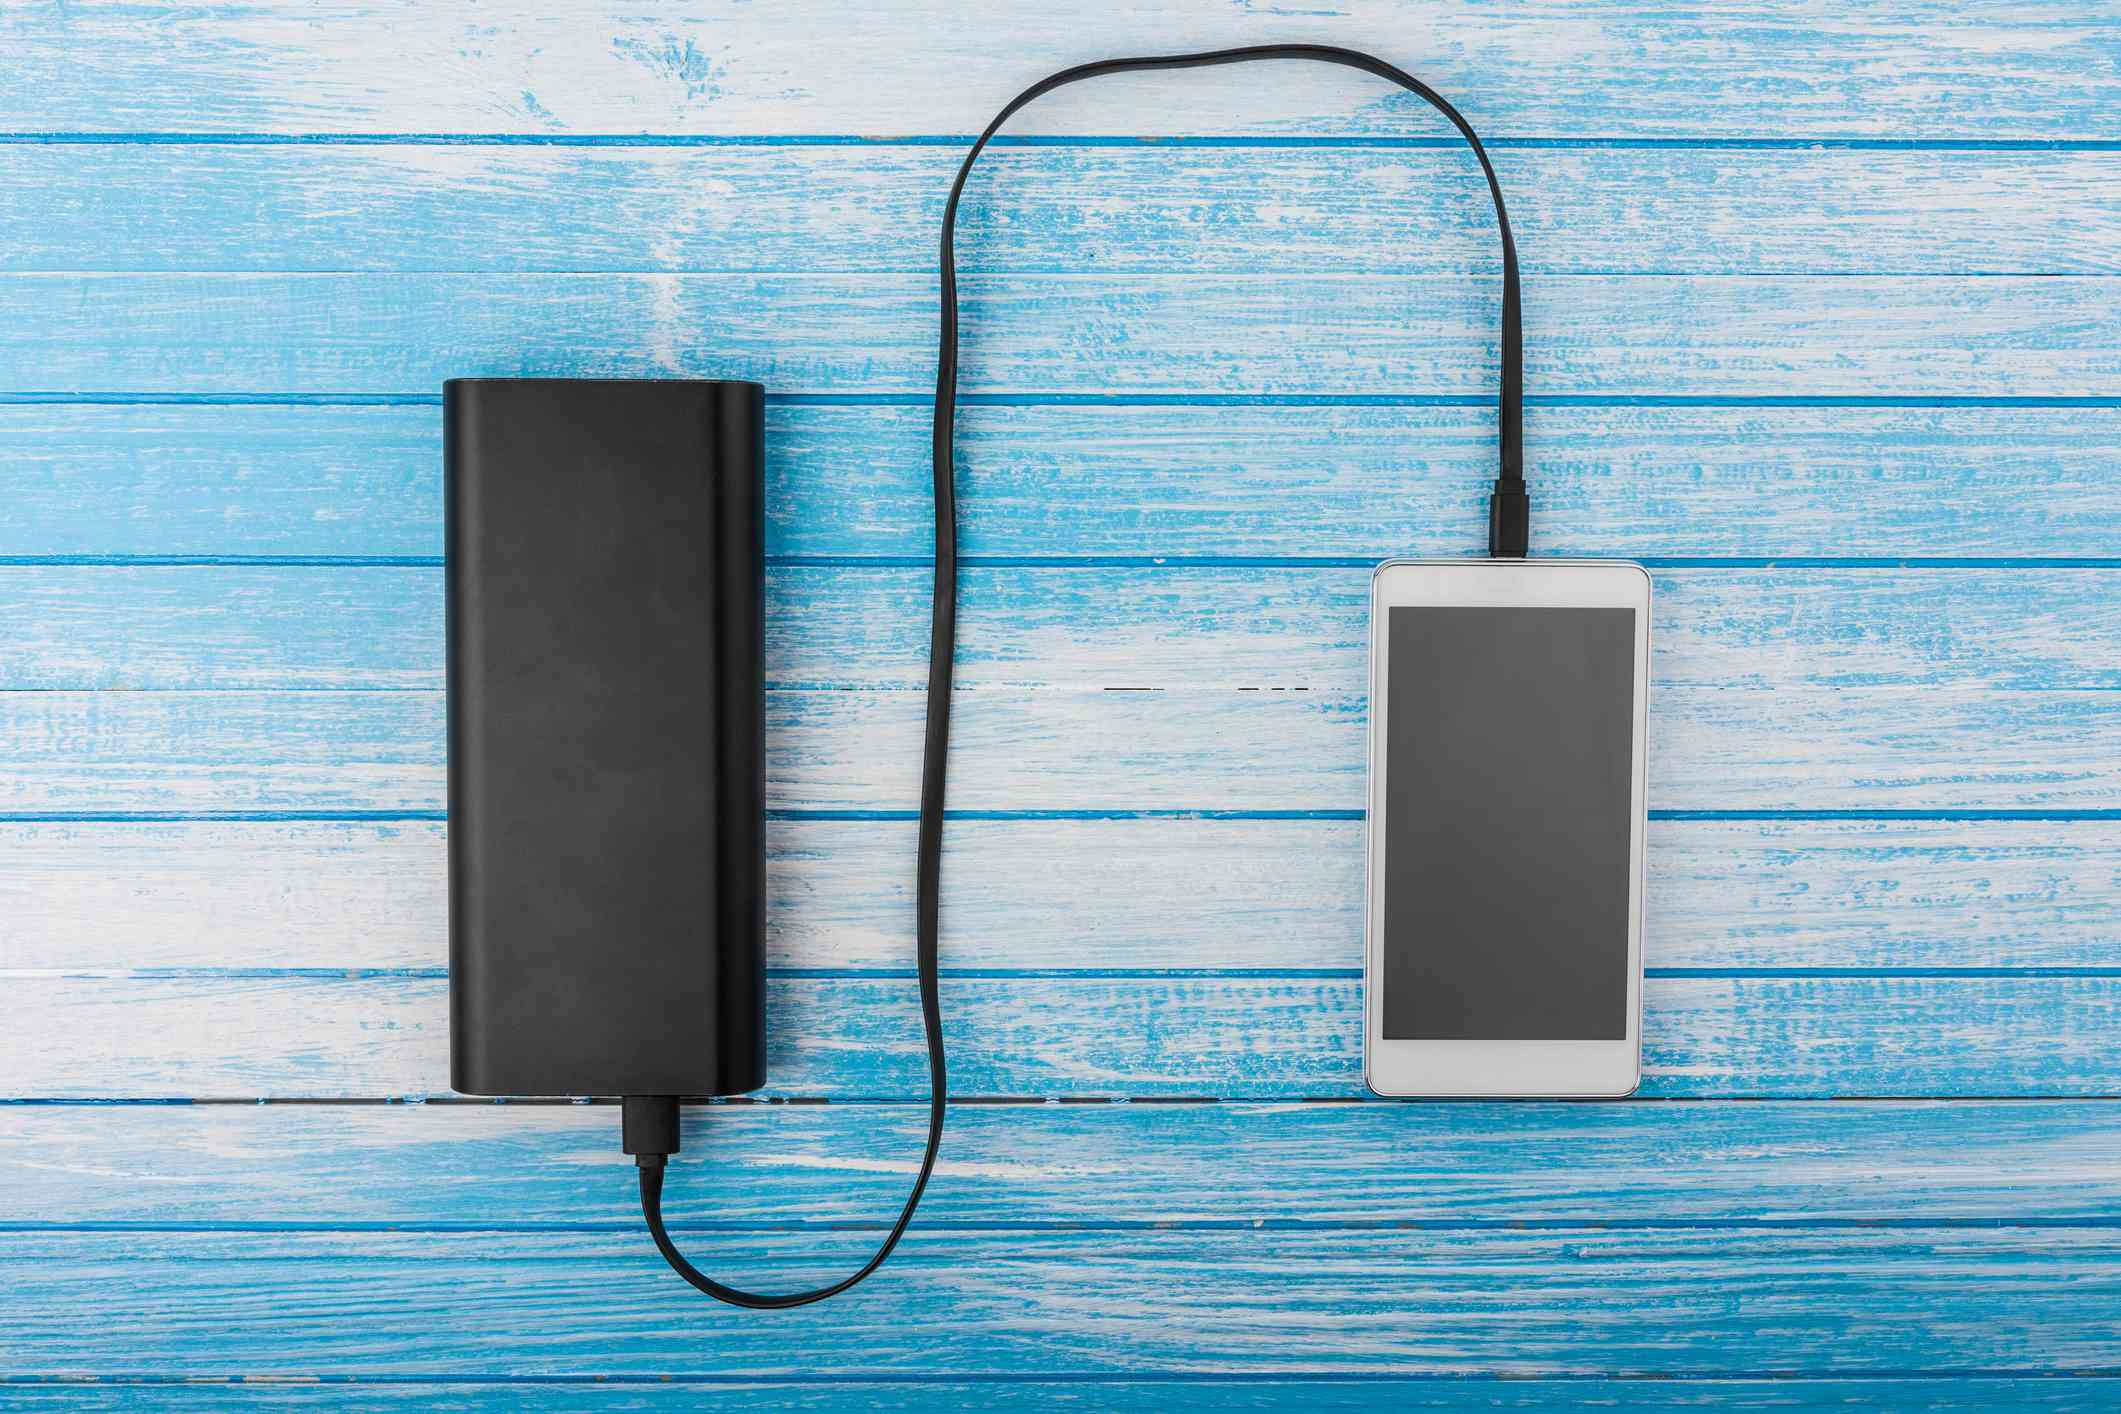 Mobile phone charging on portable power supply.